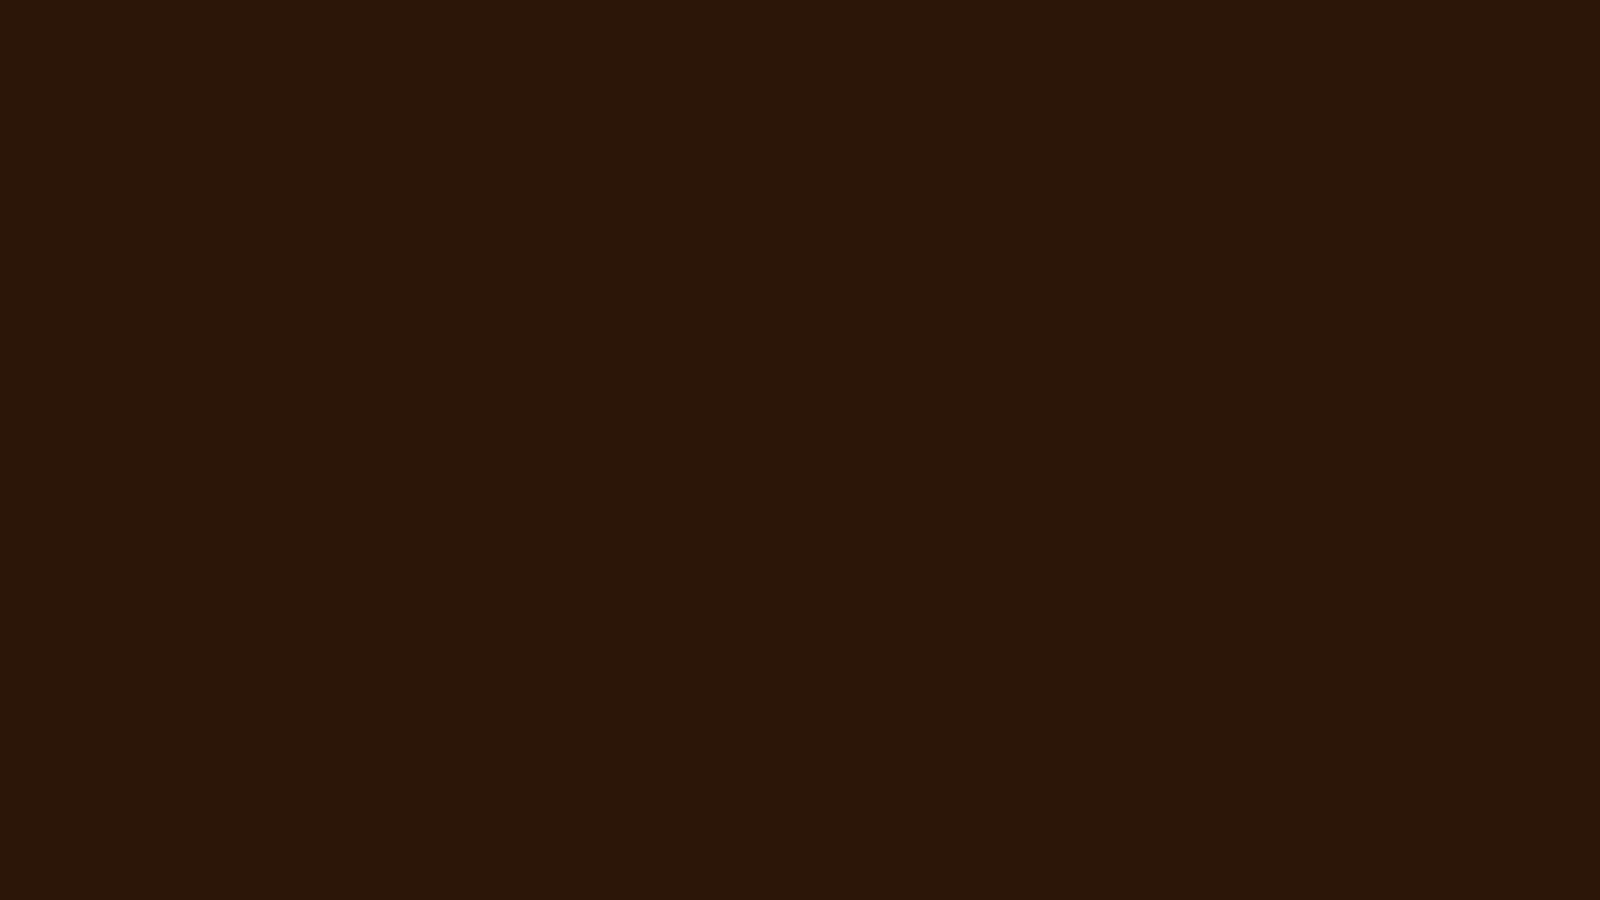 1600x900 zinnwaldite brown solid color background